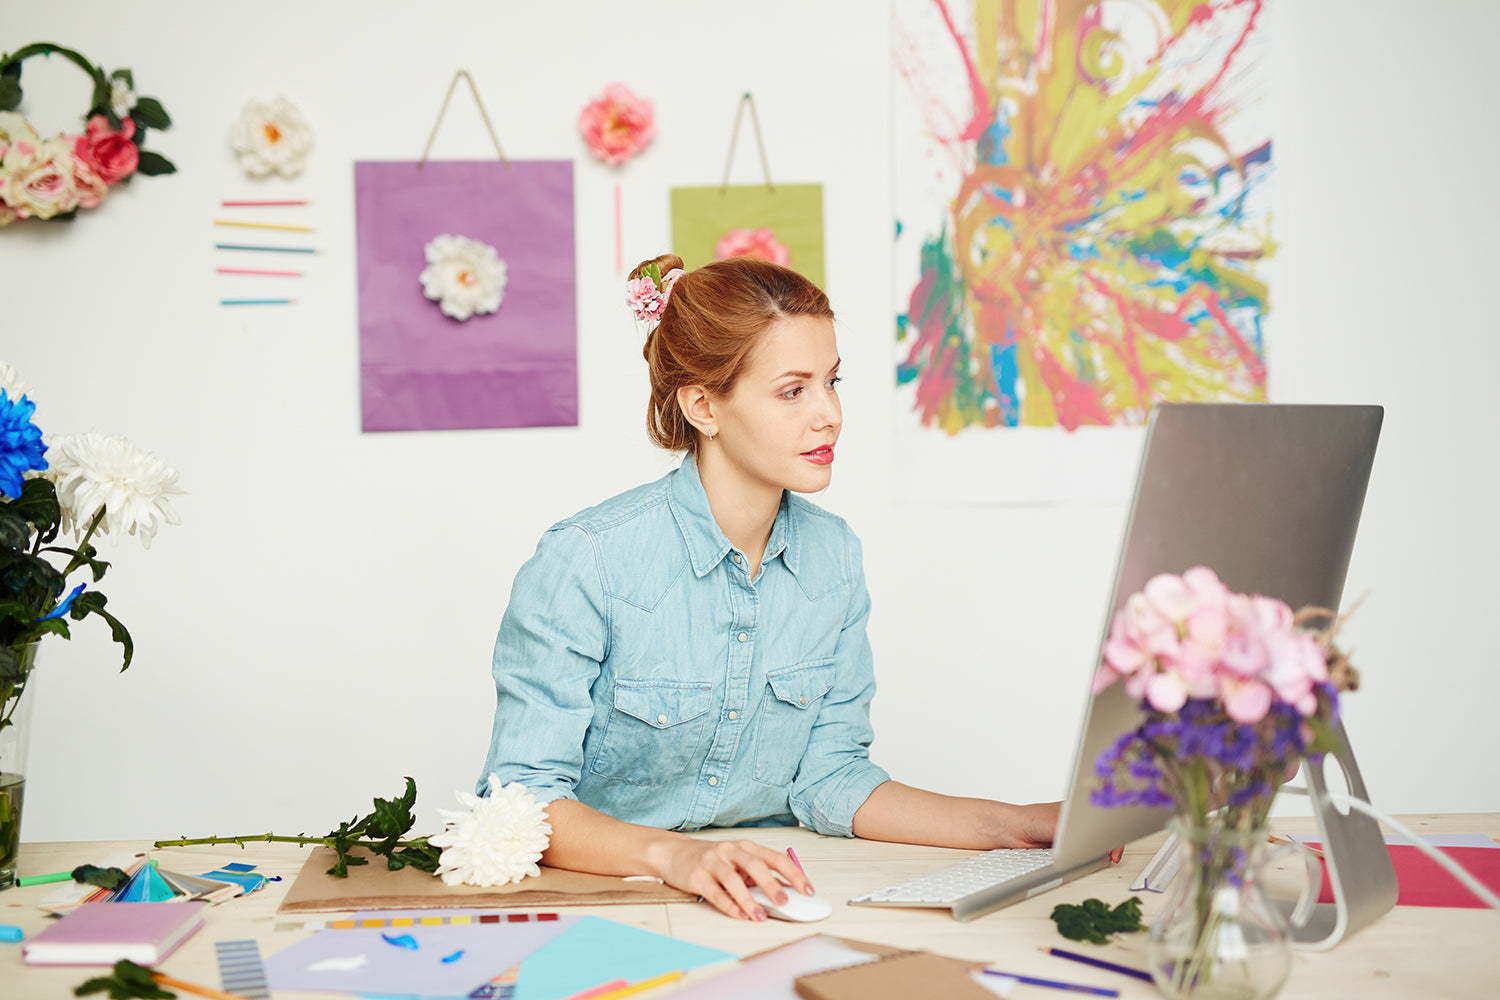 Profitable Small Business Ideas for Graphic Designers